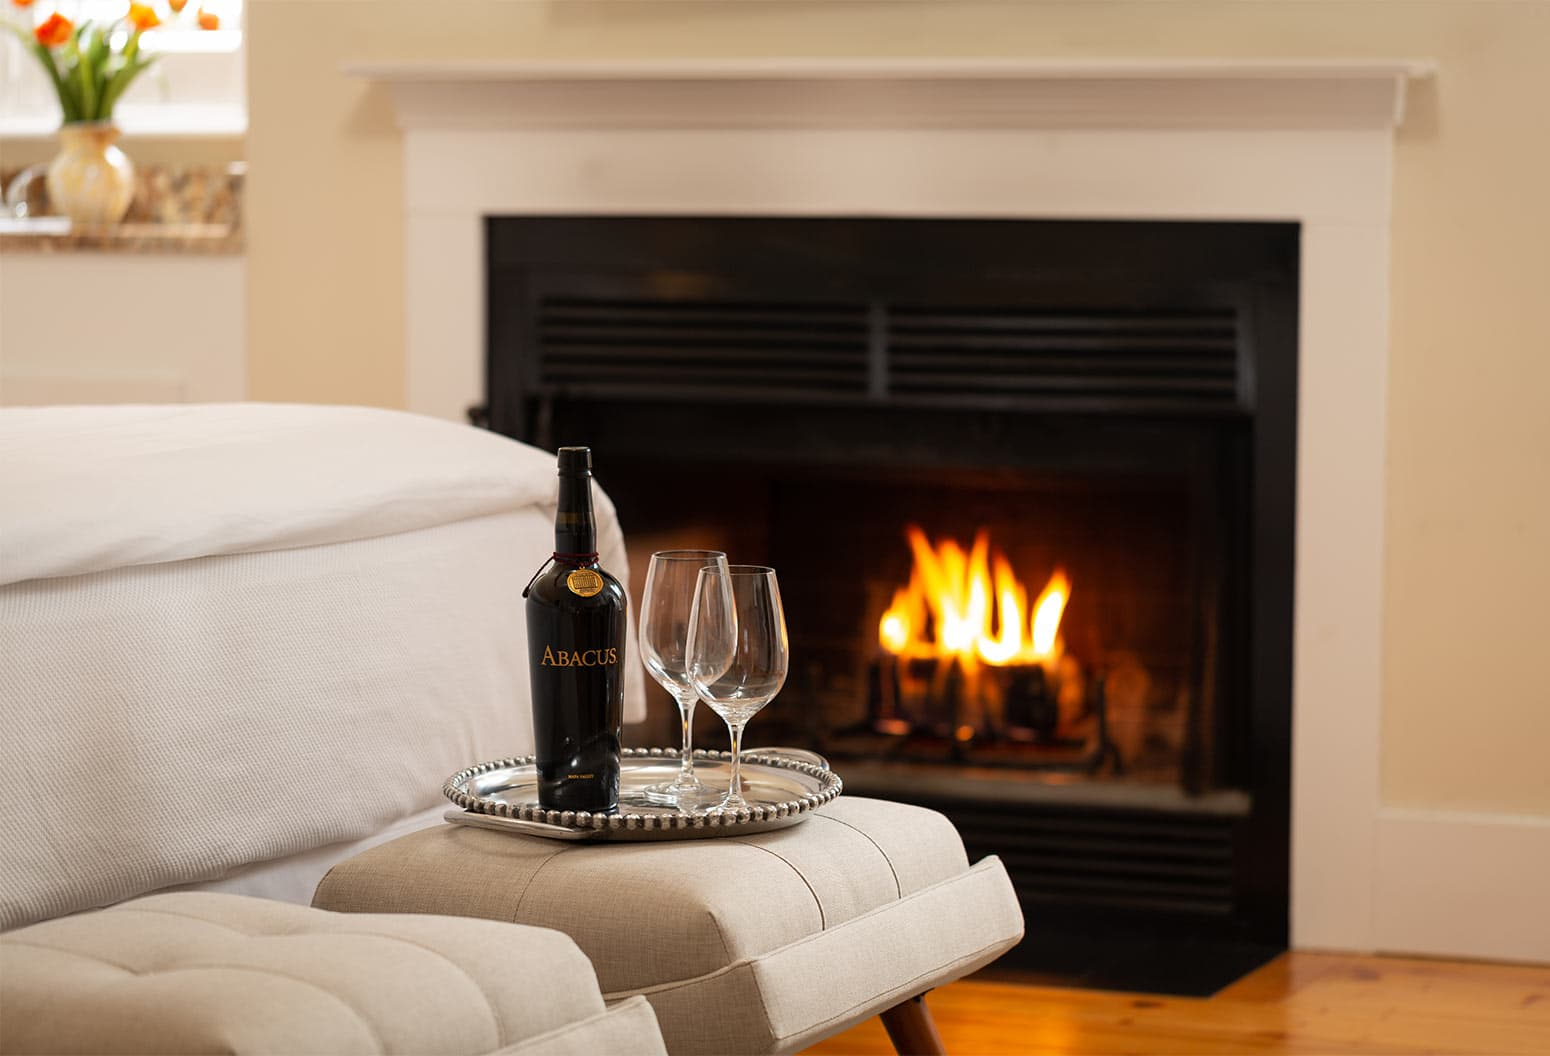 Bottle of Abacus wine with fireplace in background